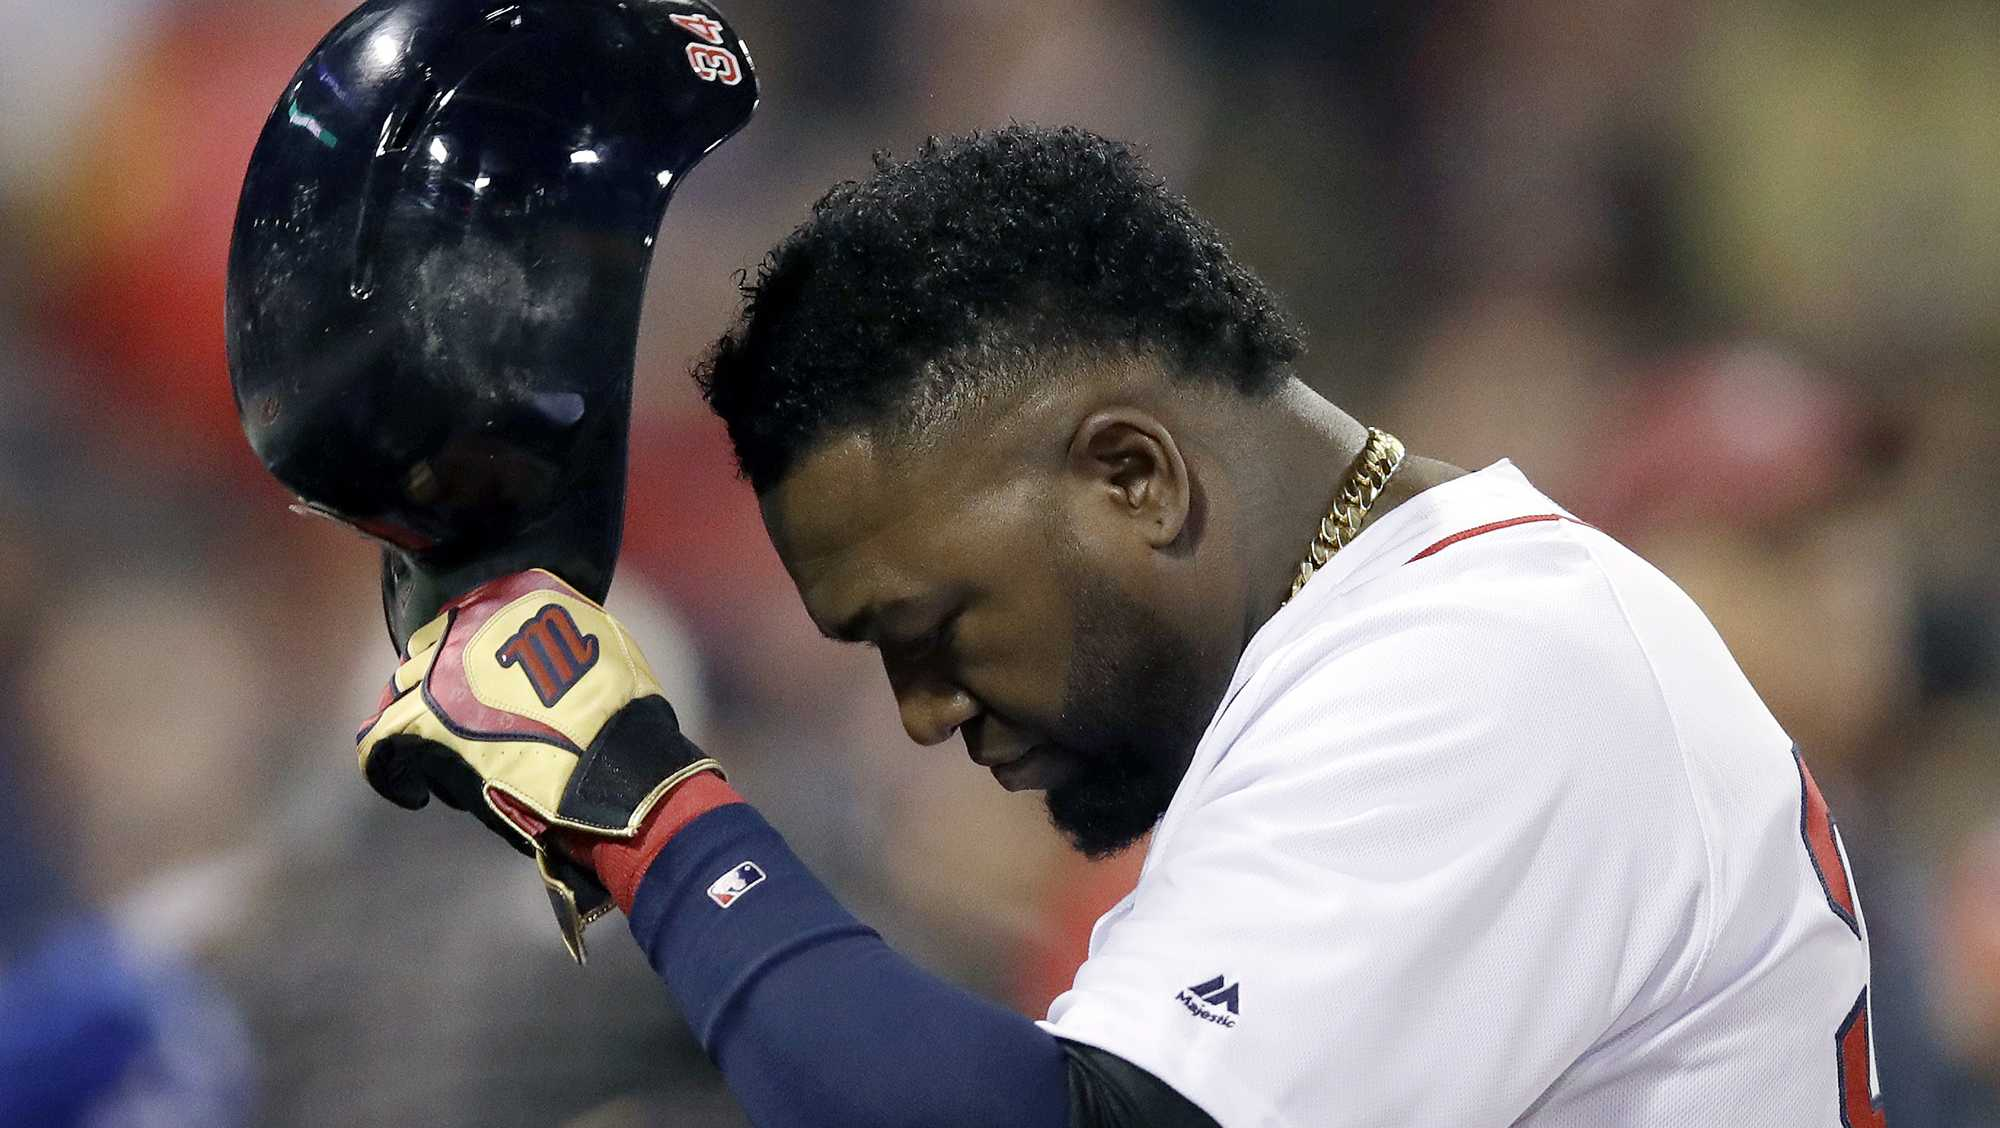 David Ortiz of the Red Sox returns to the dugout after grounding out during Game 3 of the ALDS on Monday night at Fenway Park. It was the celebrated slugger's final game.